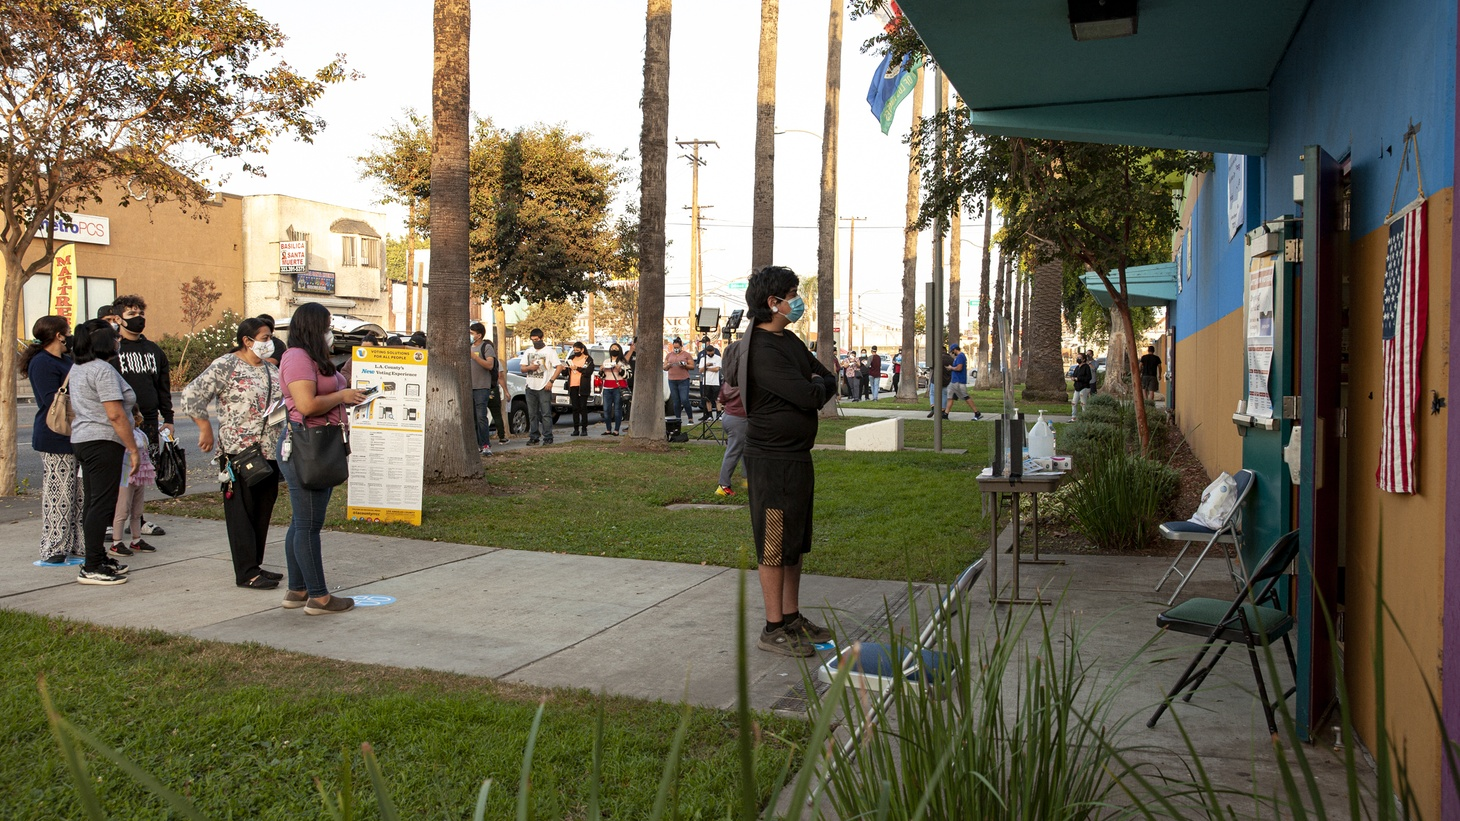 People wait in line to vote at Ruben Salazar Park as the sun sets.